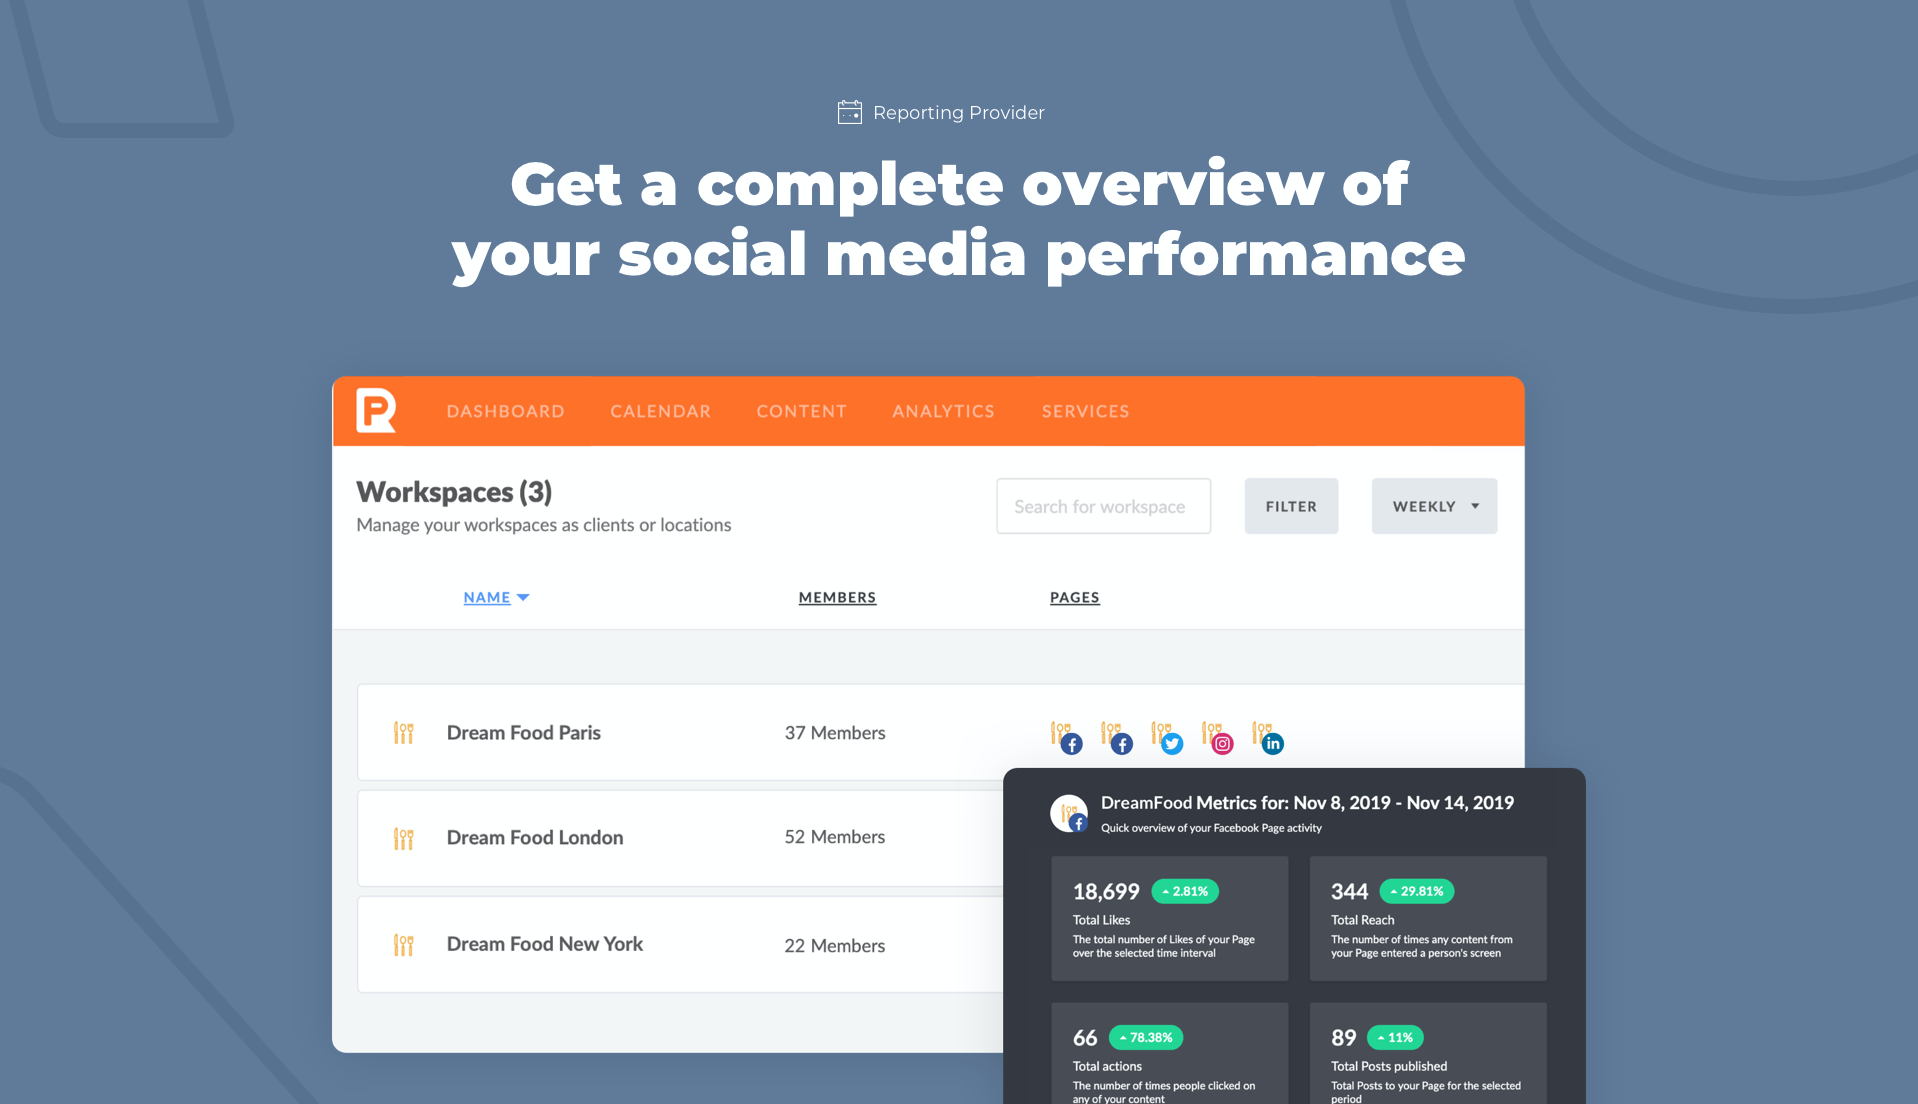 Get a complete overview of your social media performance